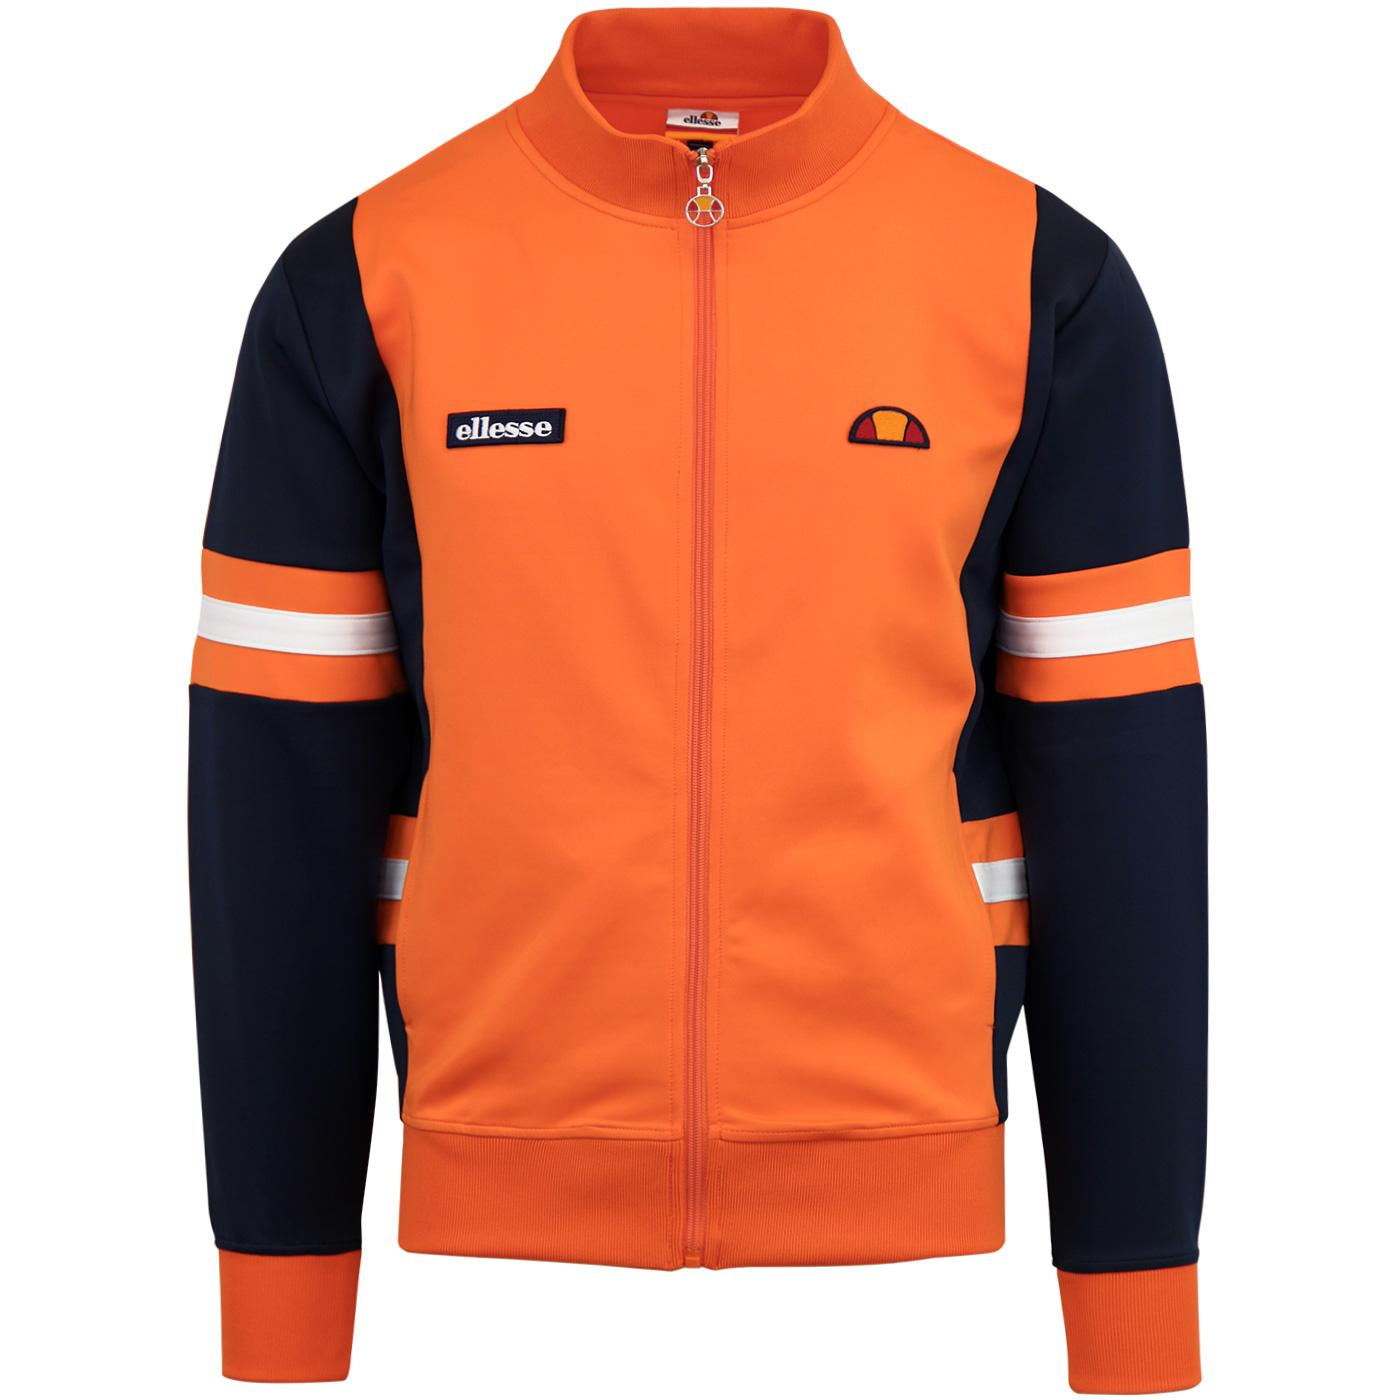 Galtburg ELLESSE Men's Retro 80s Track Top - FC